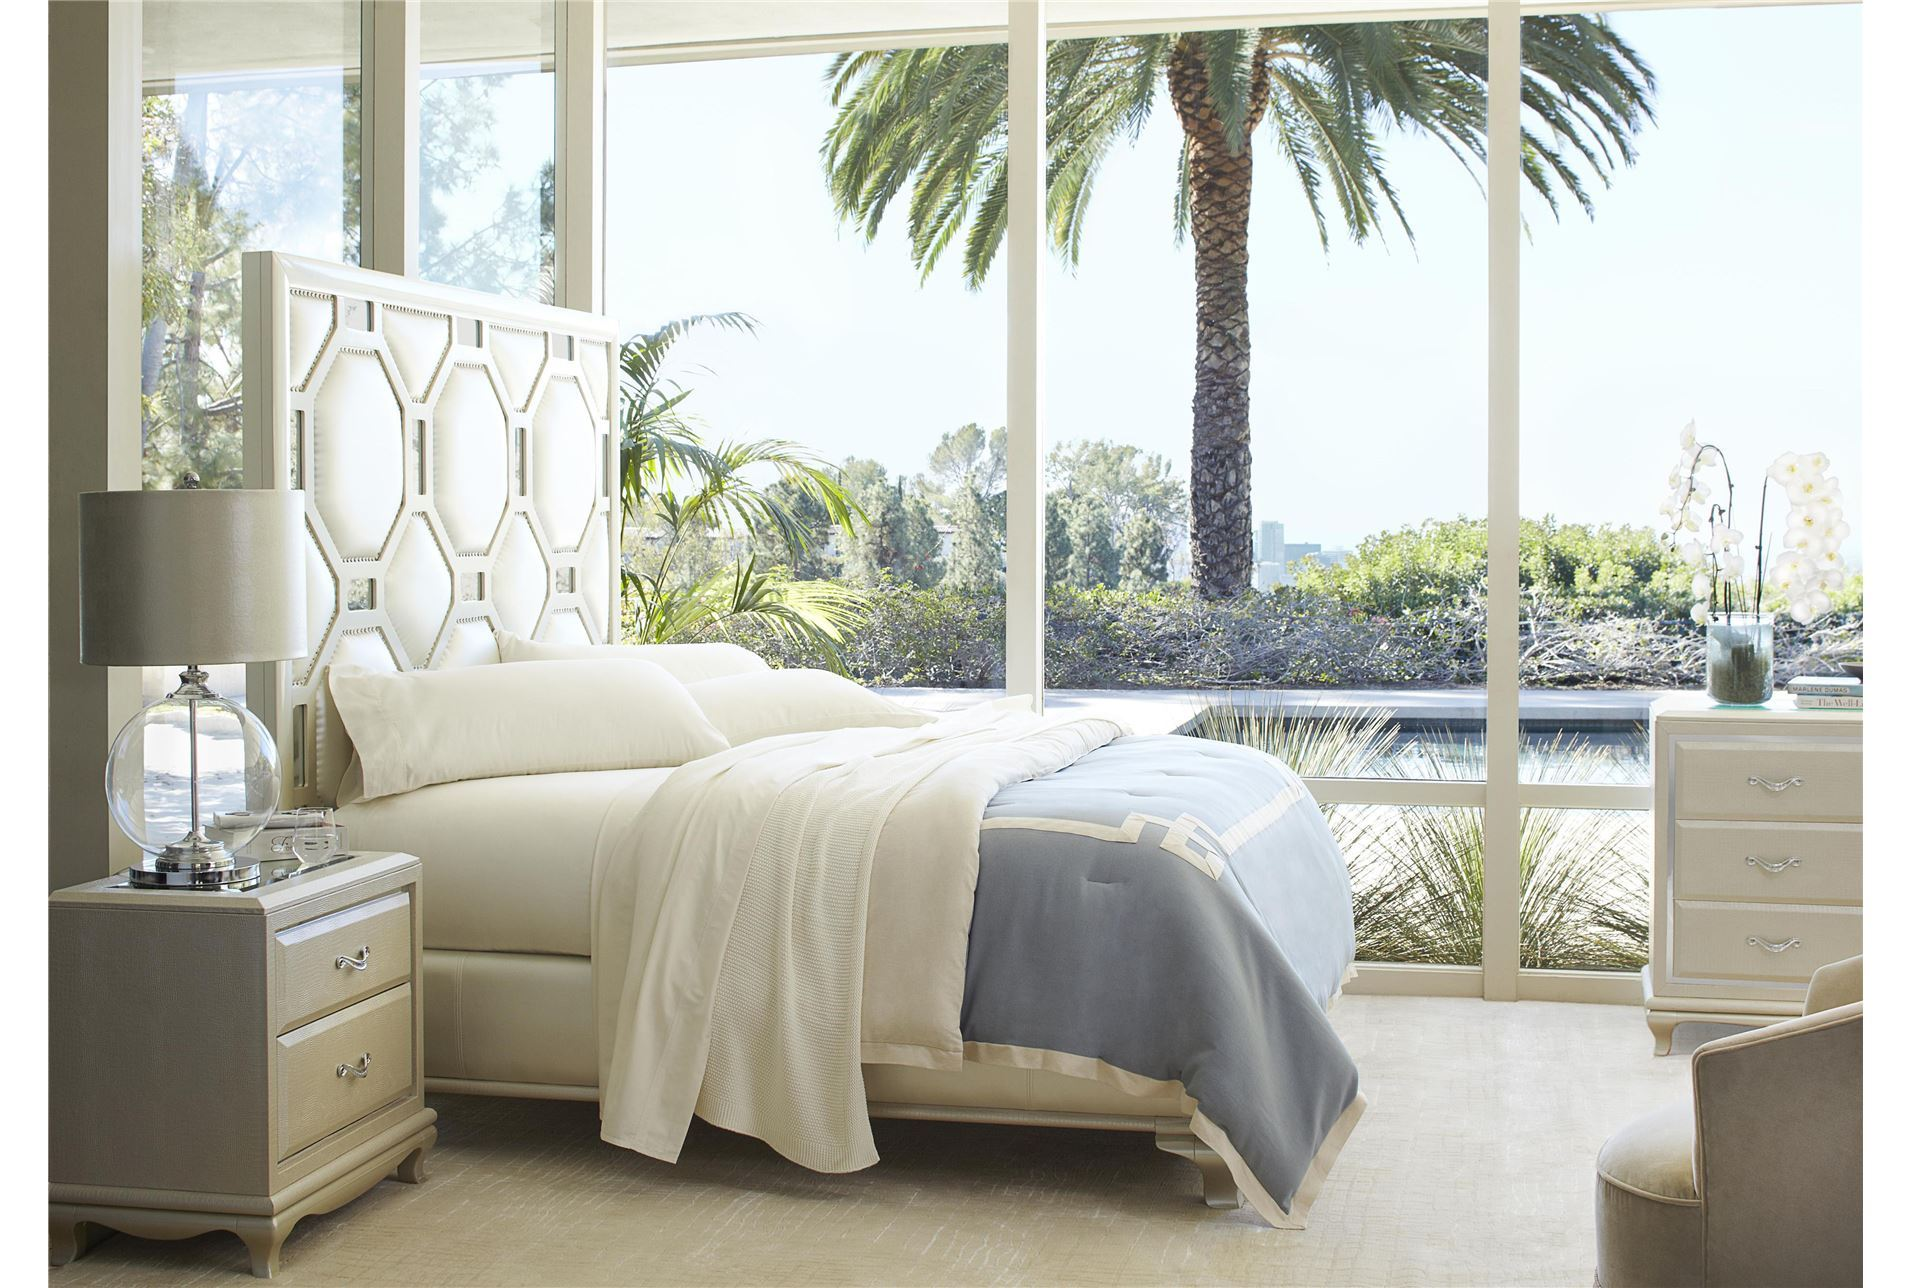 Beautiful White Queen Size Beds From US Stores Cute Furniture - Queen bedrooms